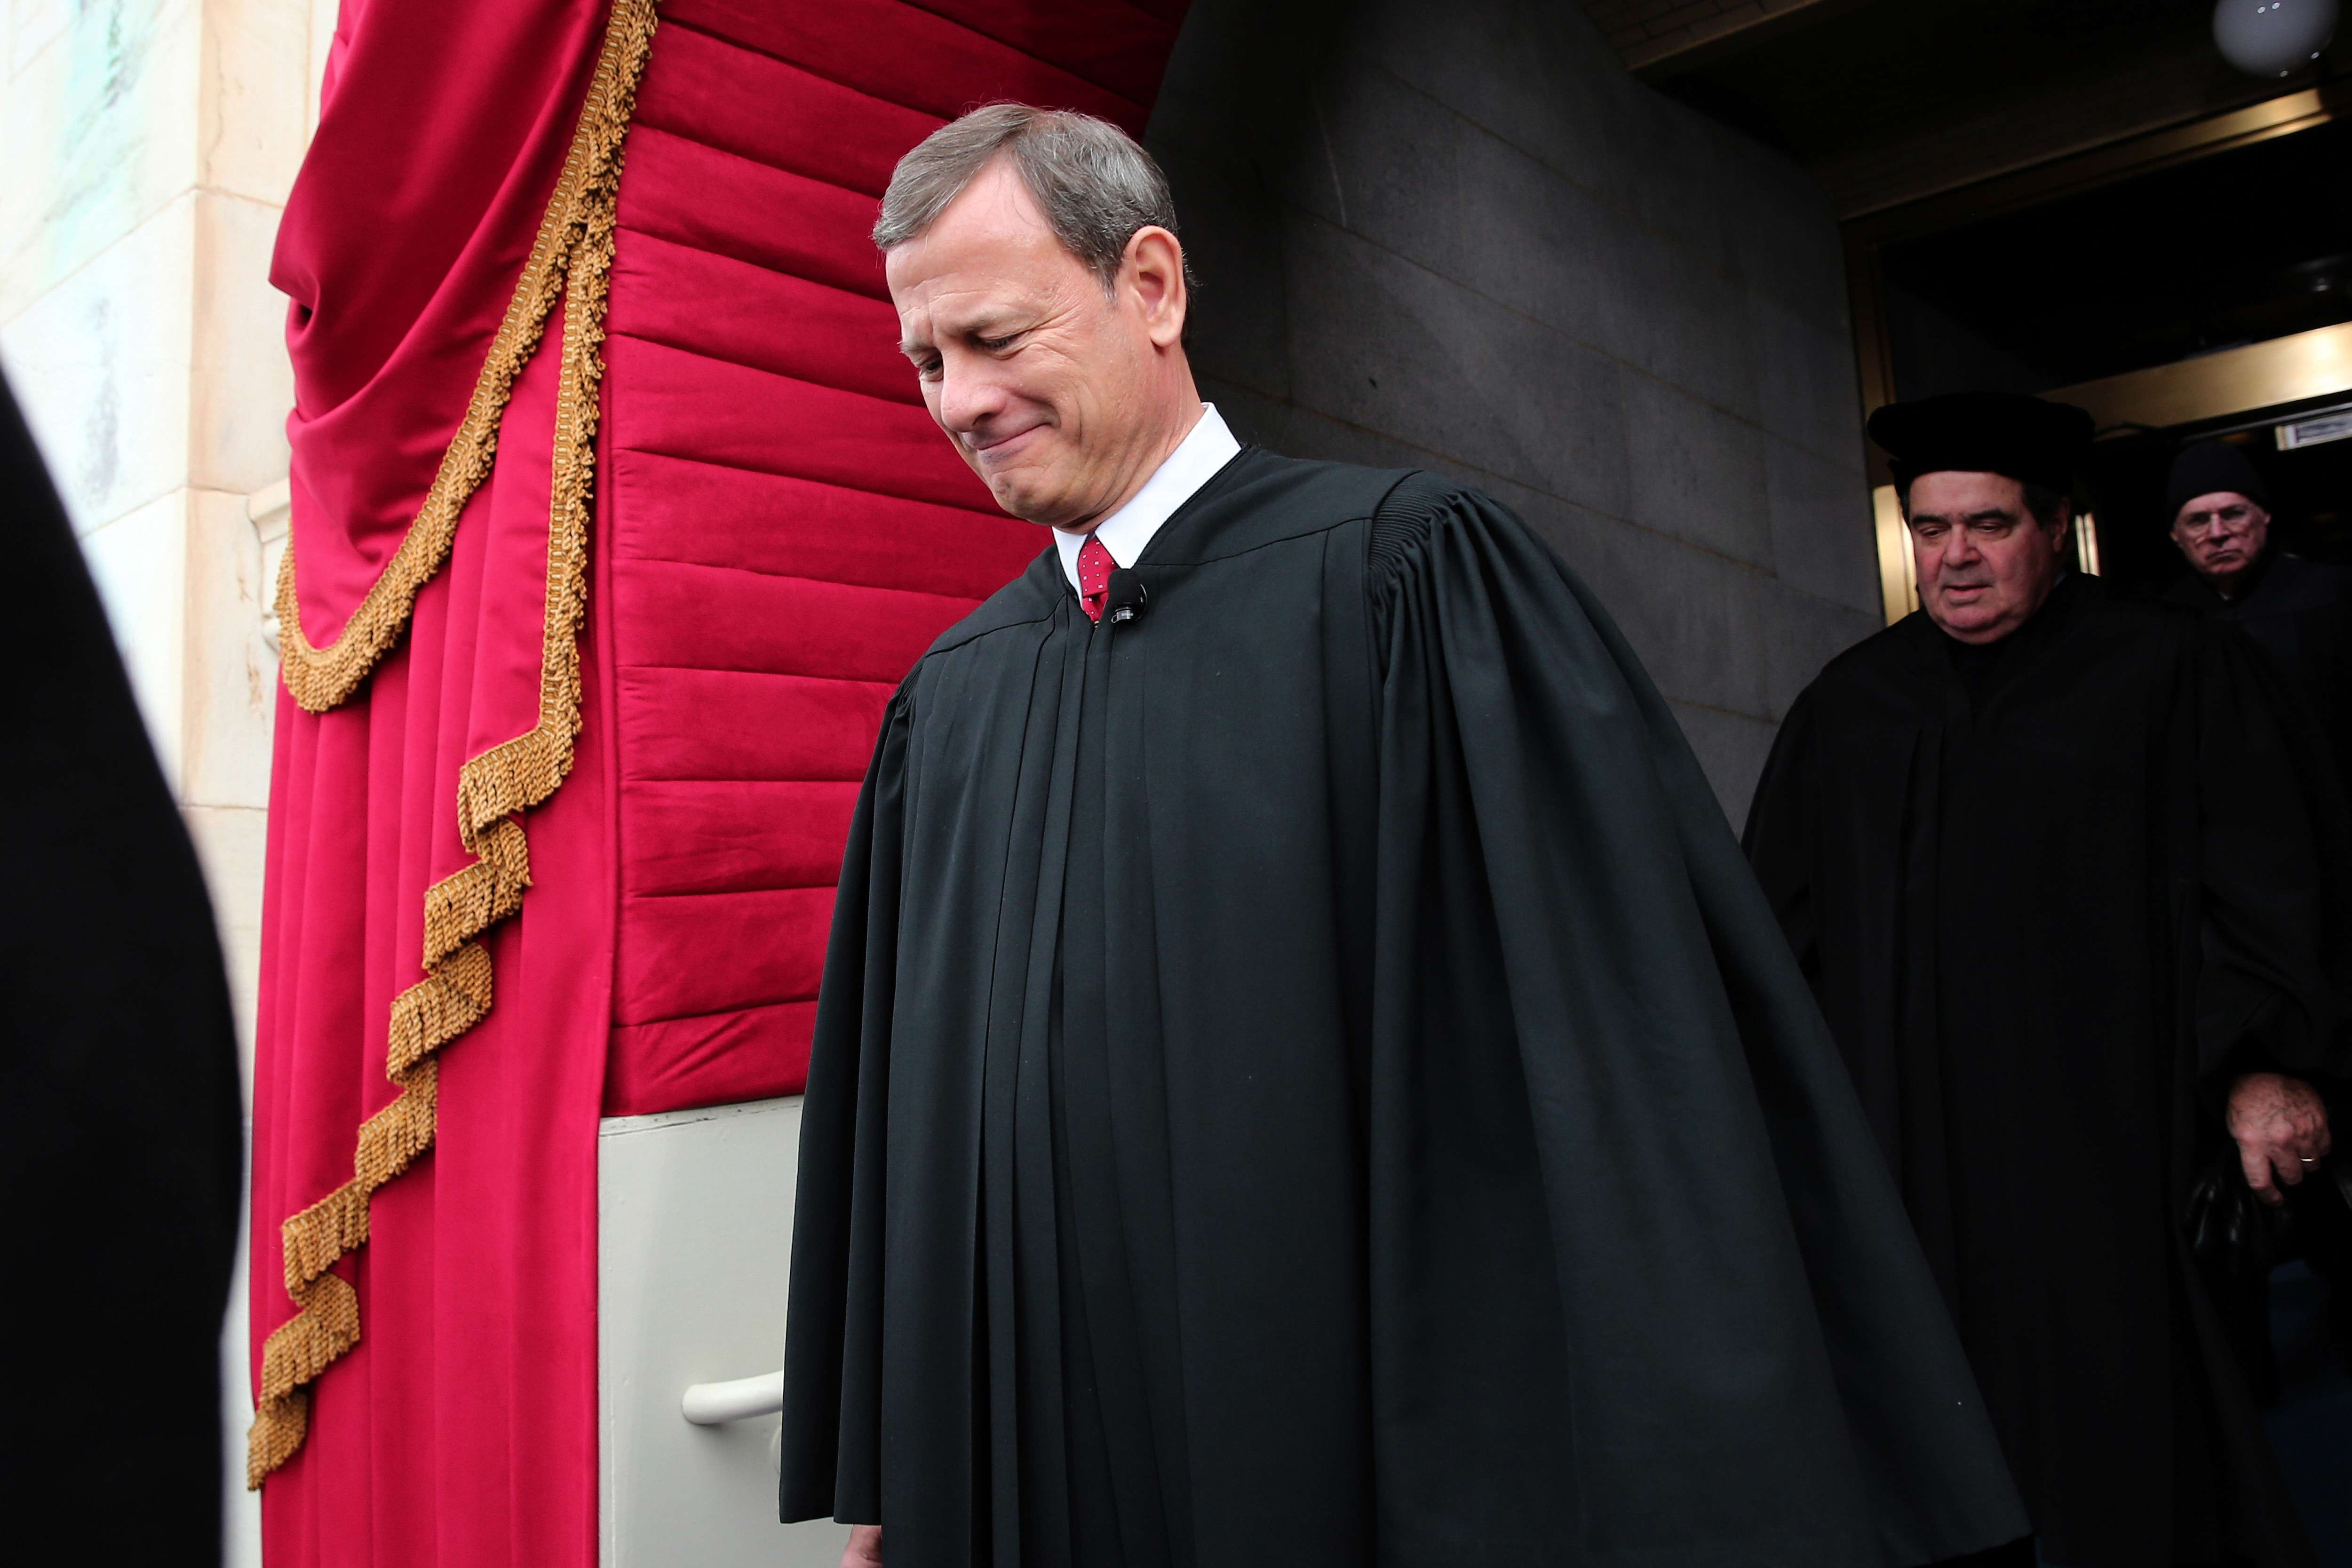 WASHINGTON, DC - JANUARY 21: Supreme Court Chief Justice John Roberts arrives during the presidential inauguration on the West Front of the U.S. Capitol January 21, 2013 in Washington, DC. Barack Obama was re-elected for a second term as President of the United States. (Photo by POOL Win McNamee/Getty Images)